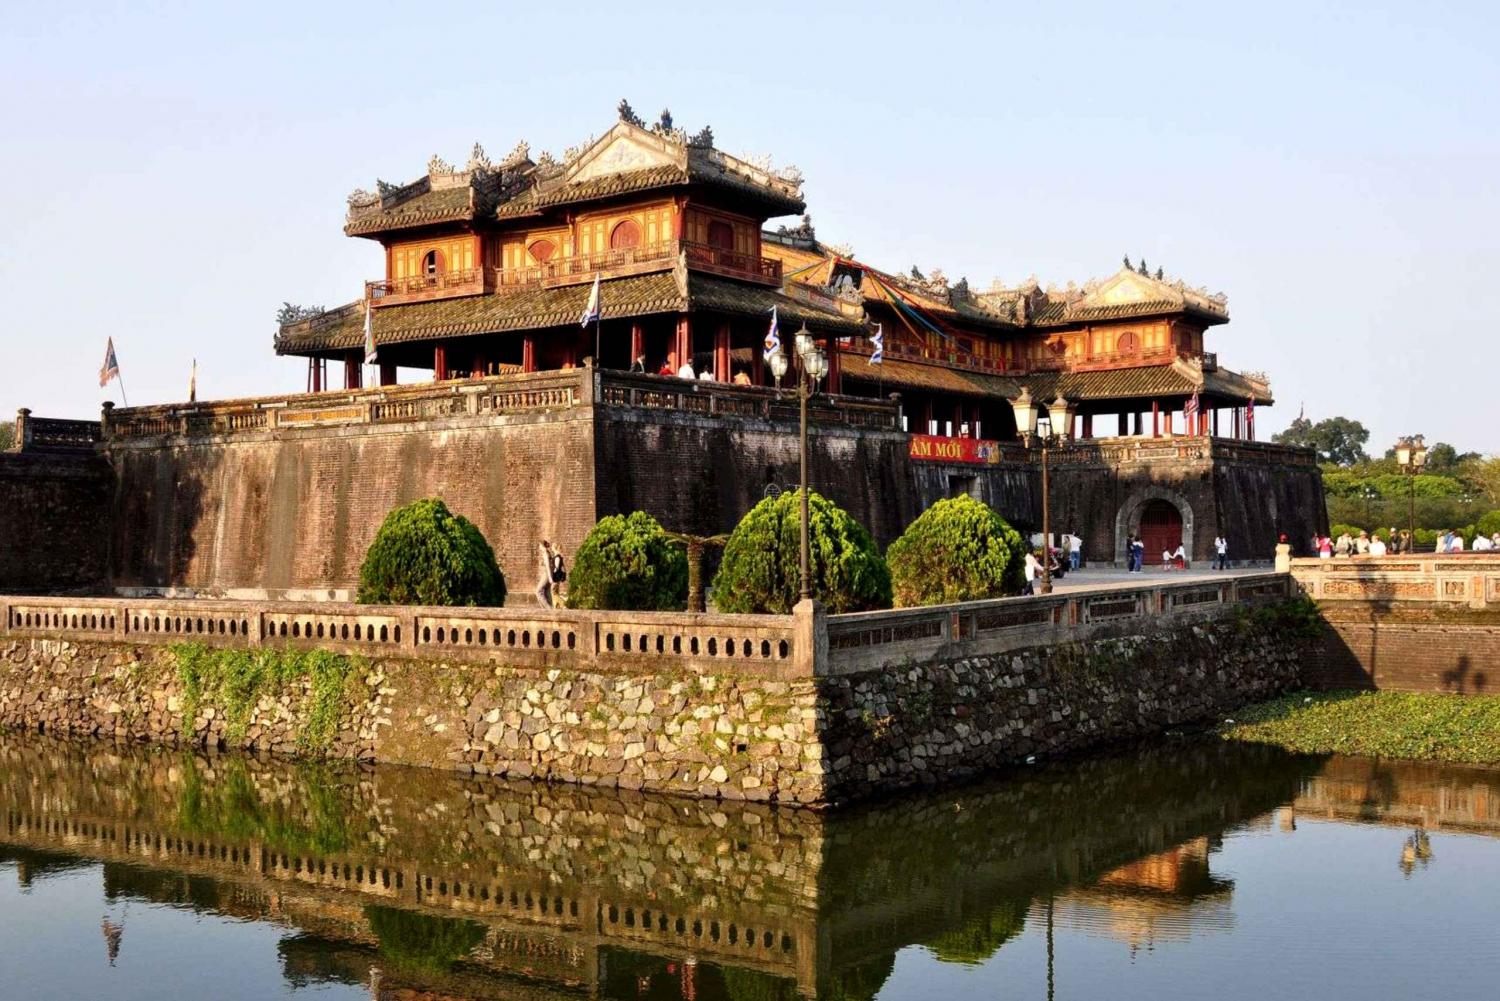 Hue Imperial City Tour from Hoi An and Da Nang